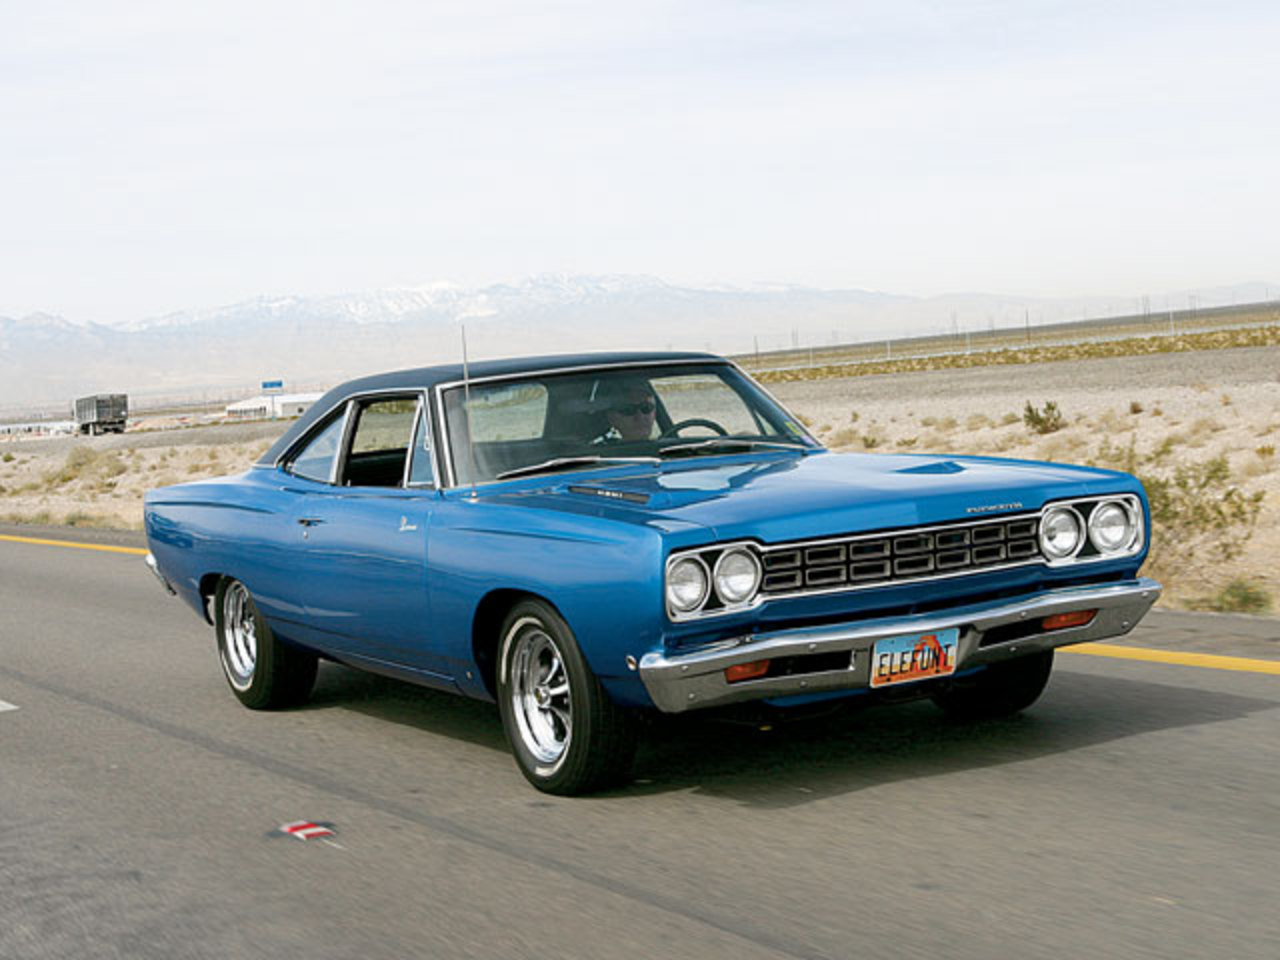 Topworldauto Photos Of Plymouth Road Runner Photo Galleries 1960 Gtx Picture 1968 Exterior